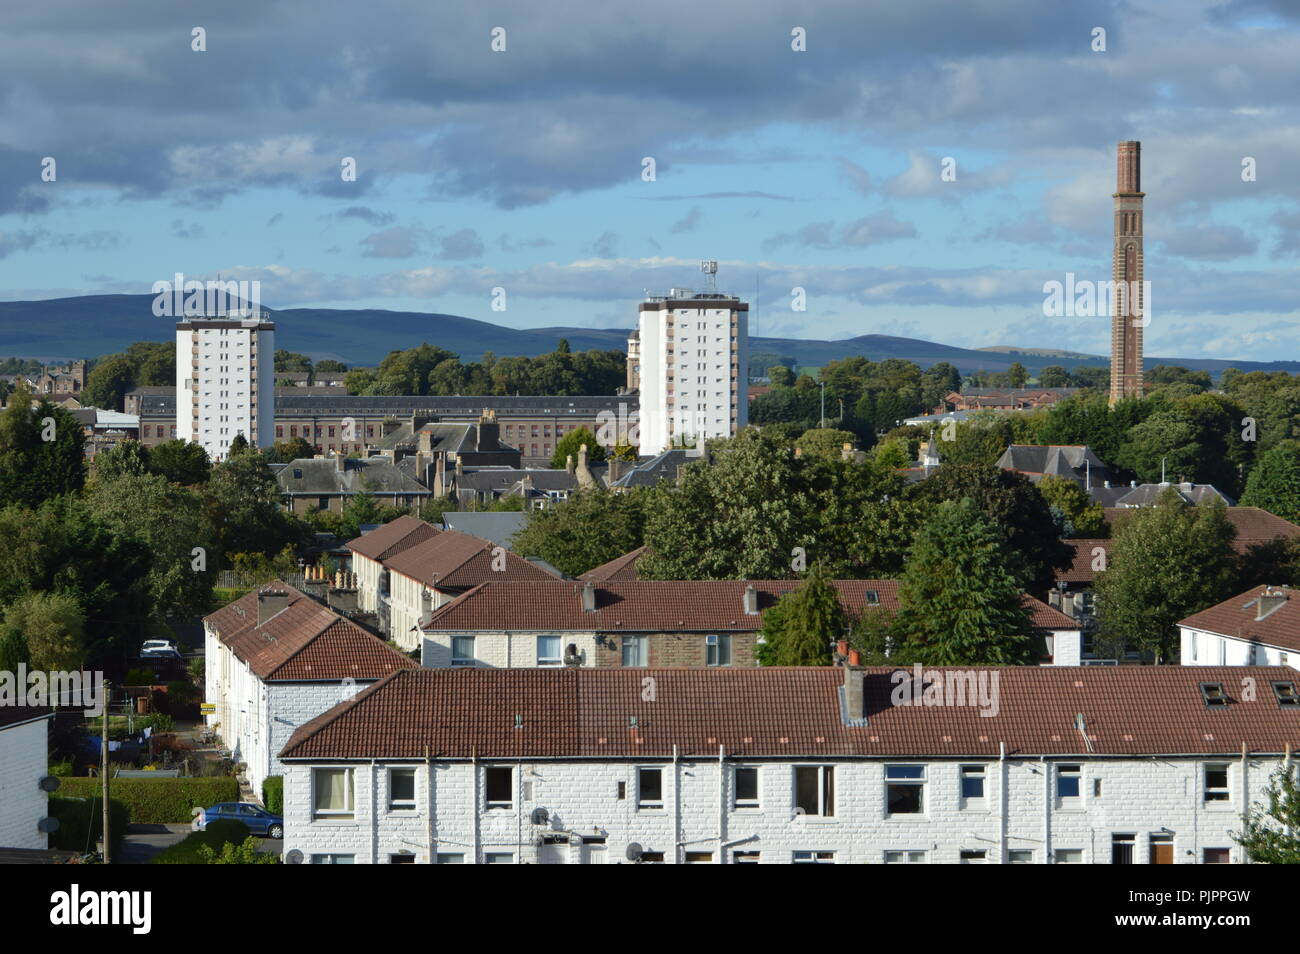 View from Balgay Hill over Lochee with Cox's Stack, Dundee, Scotland, September 2018 - Stock Image